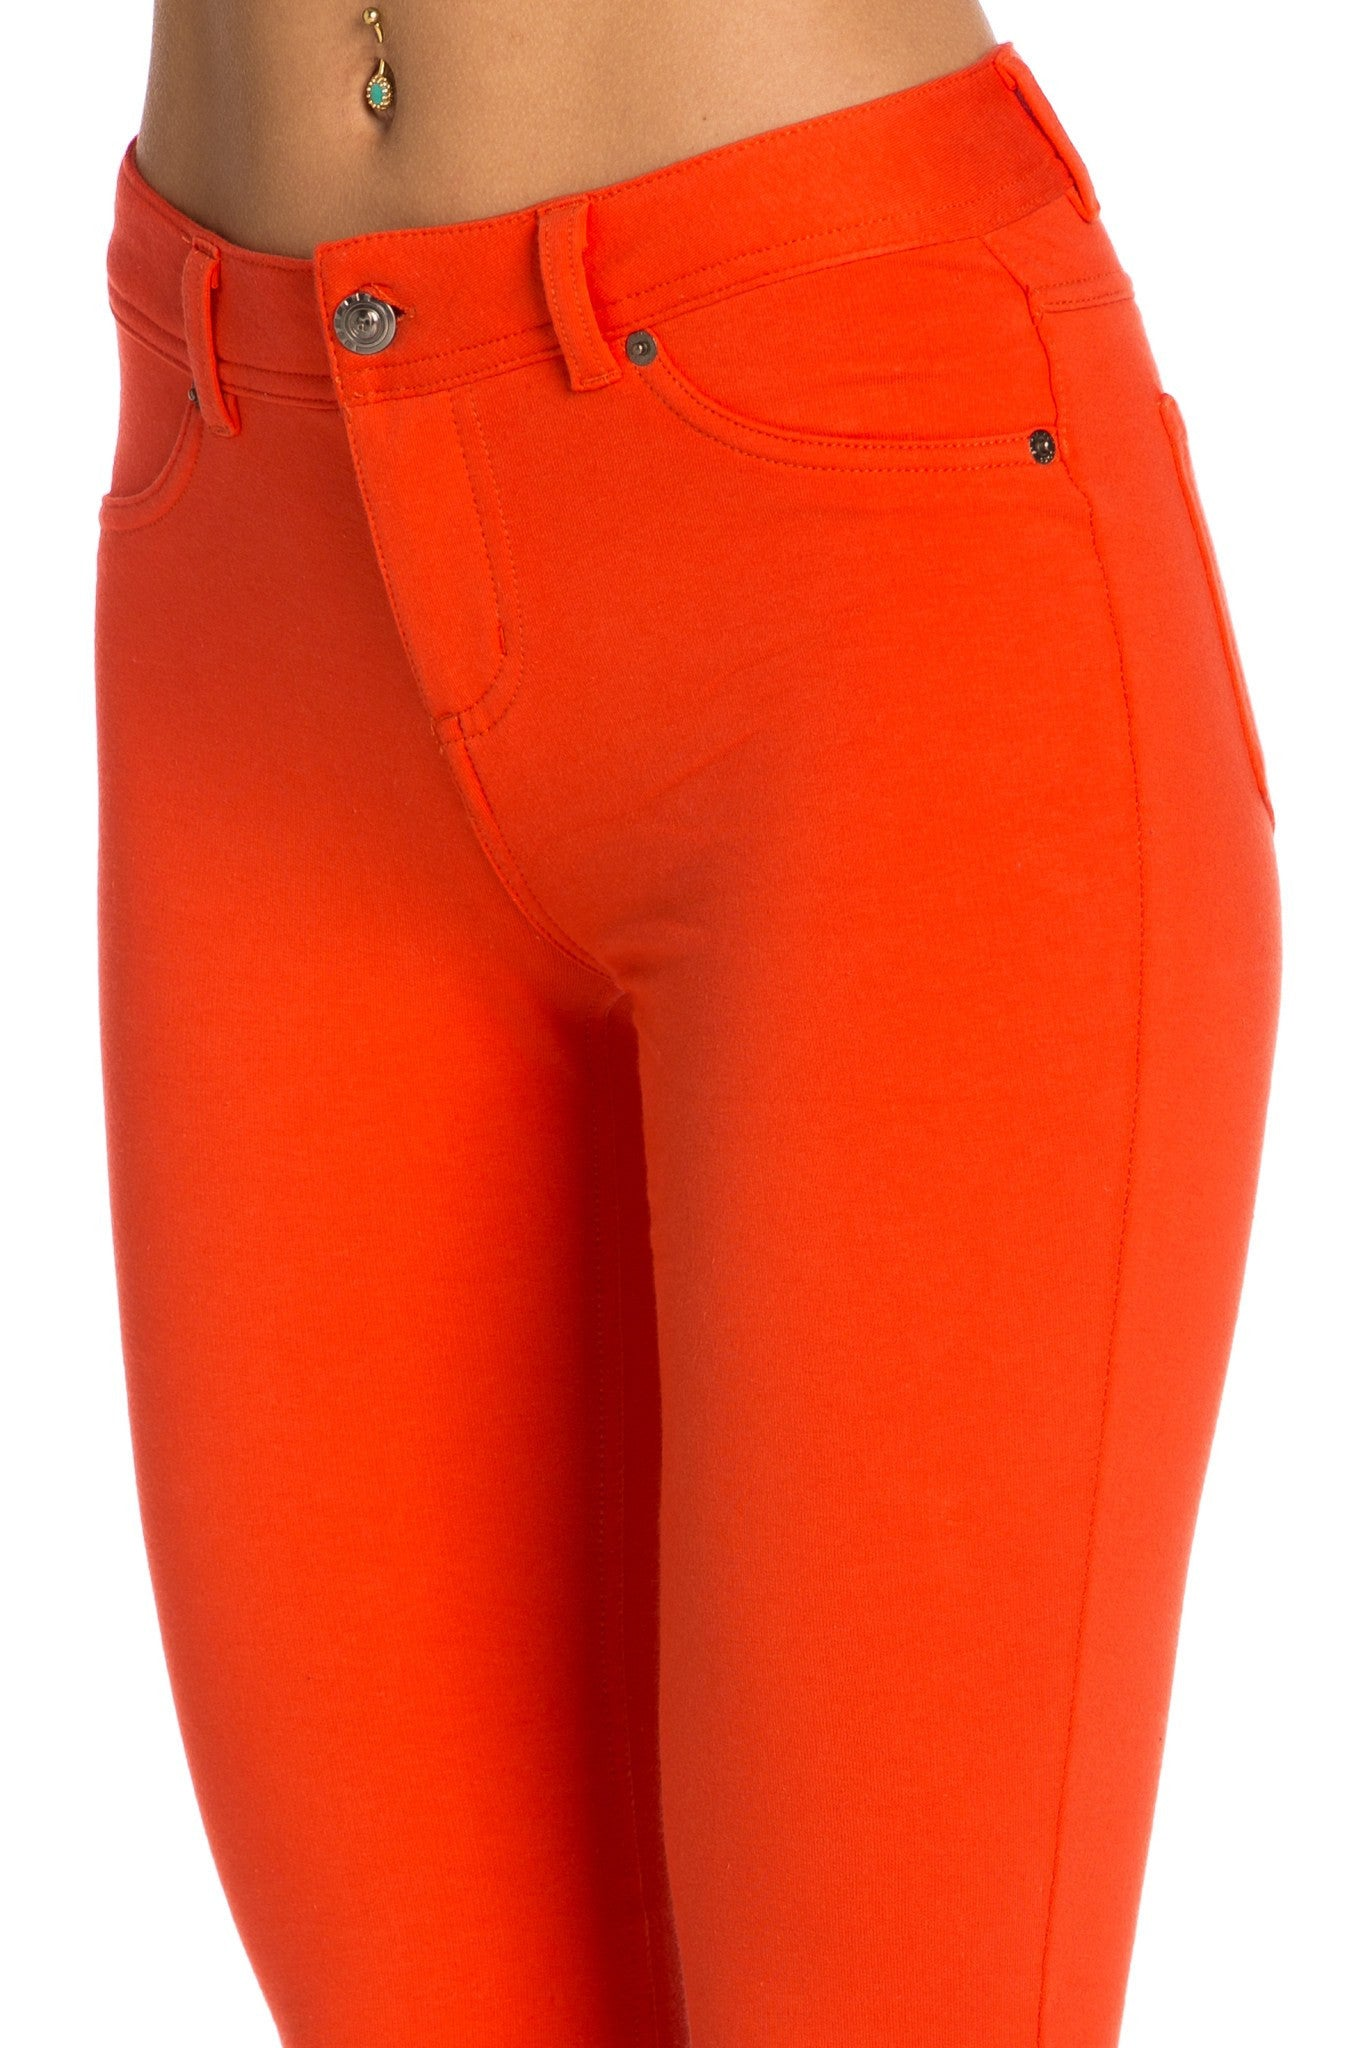 Stretch Skinny Knit Jegging Pants (Orange) - Poplooks